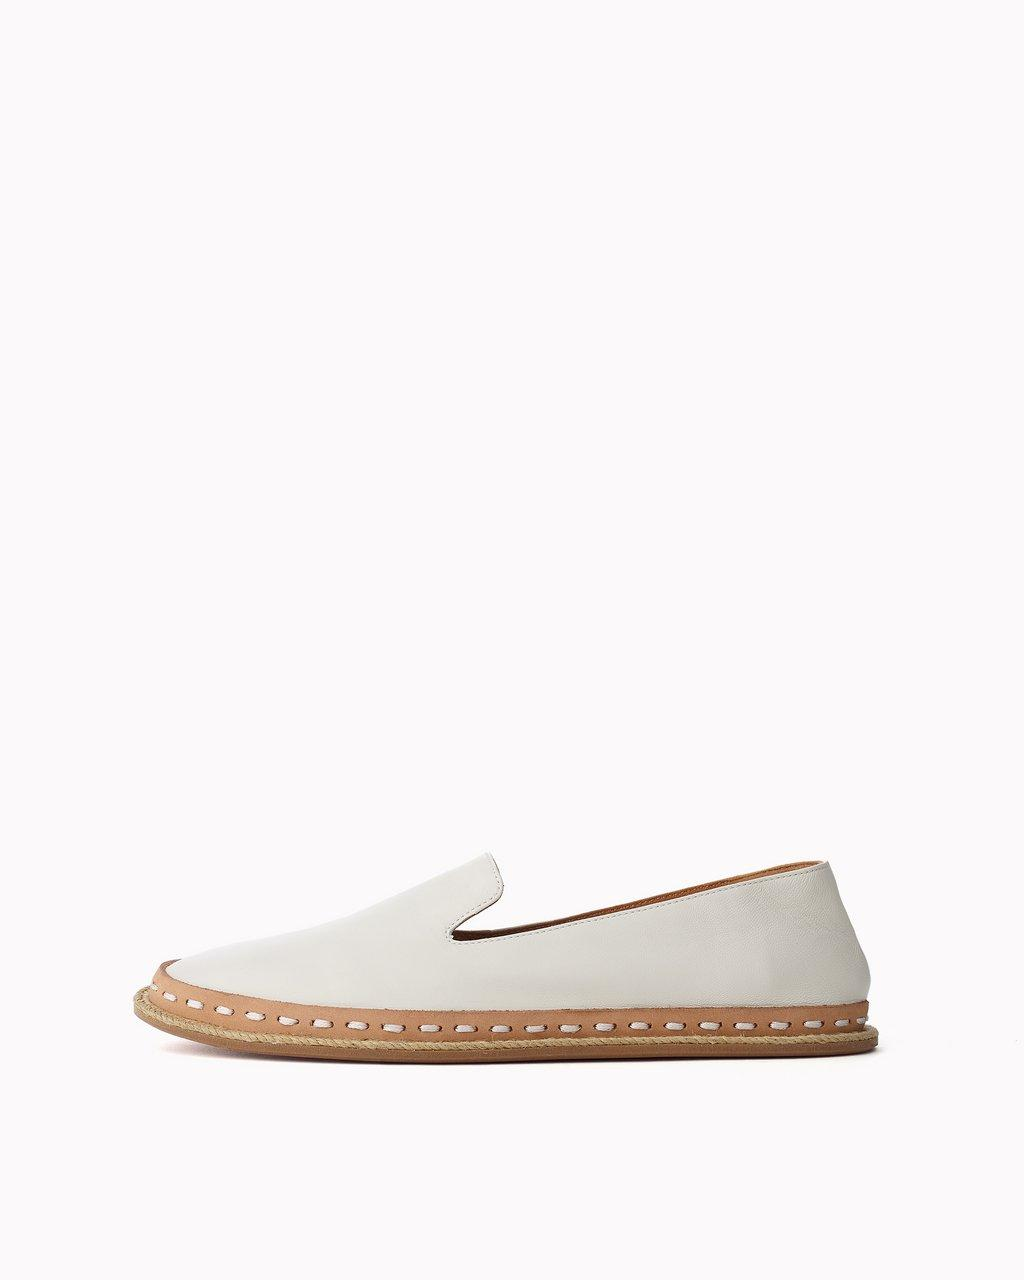 Cairo Loafer - Italian Lamb Leather